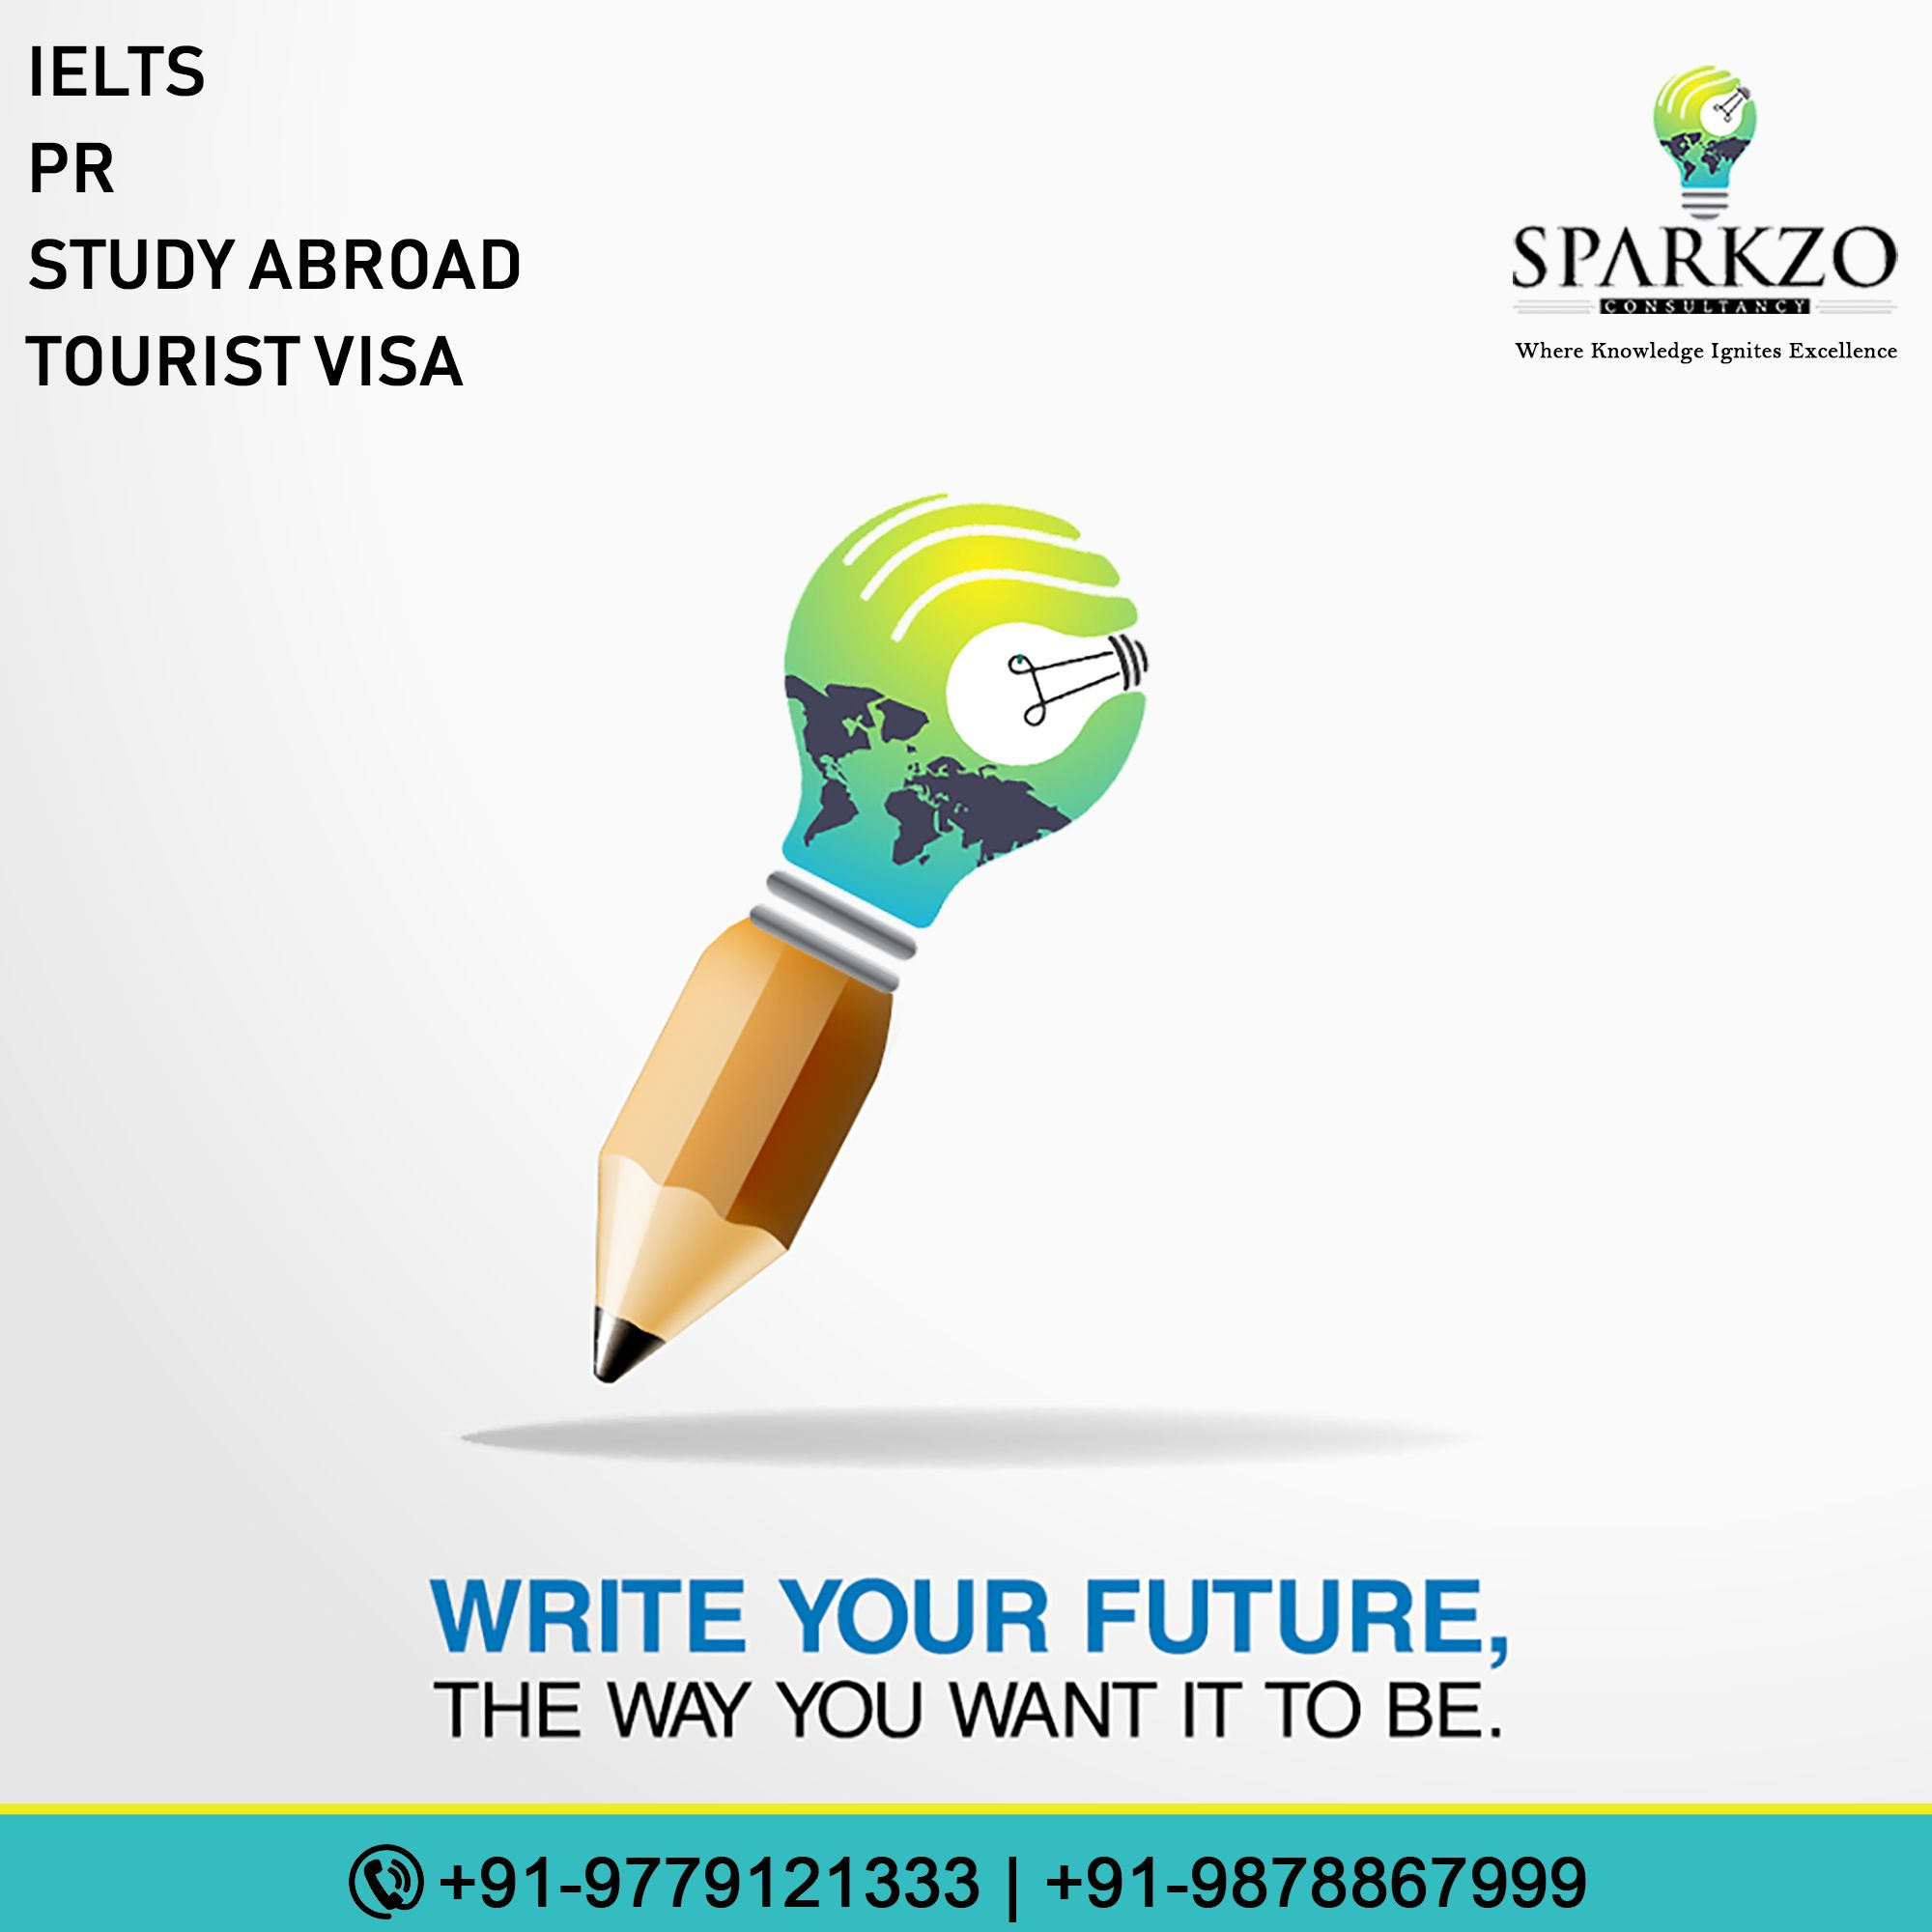 Write your future the way you want it to be with Sparkzo